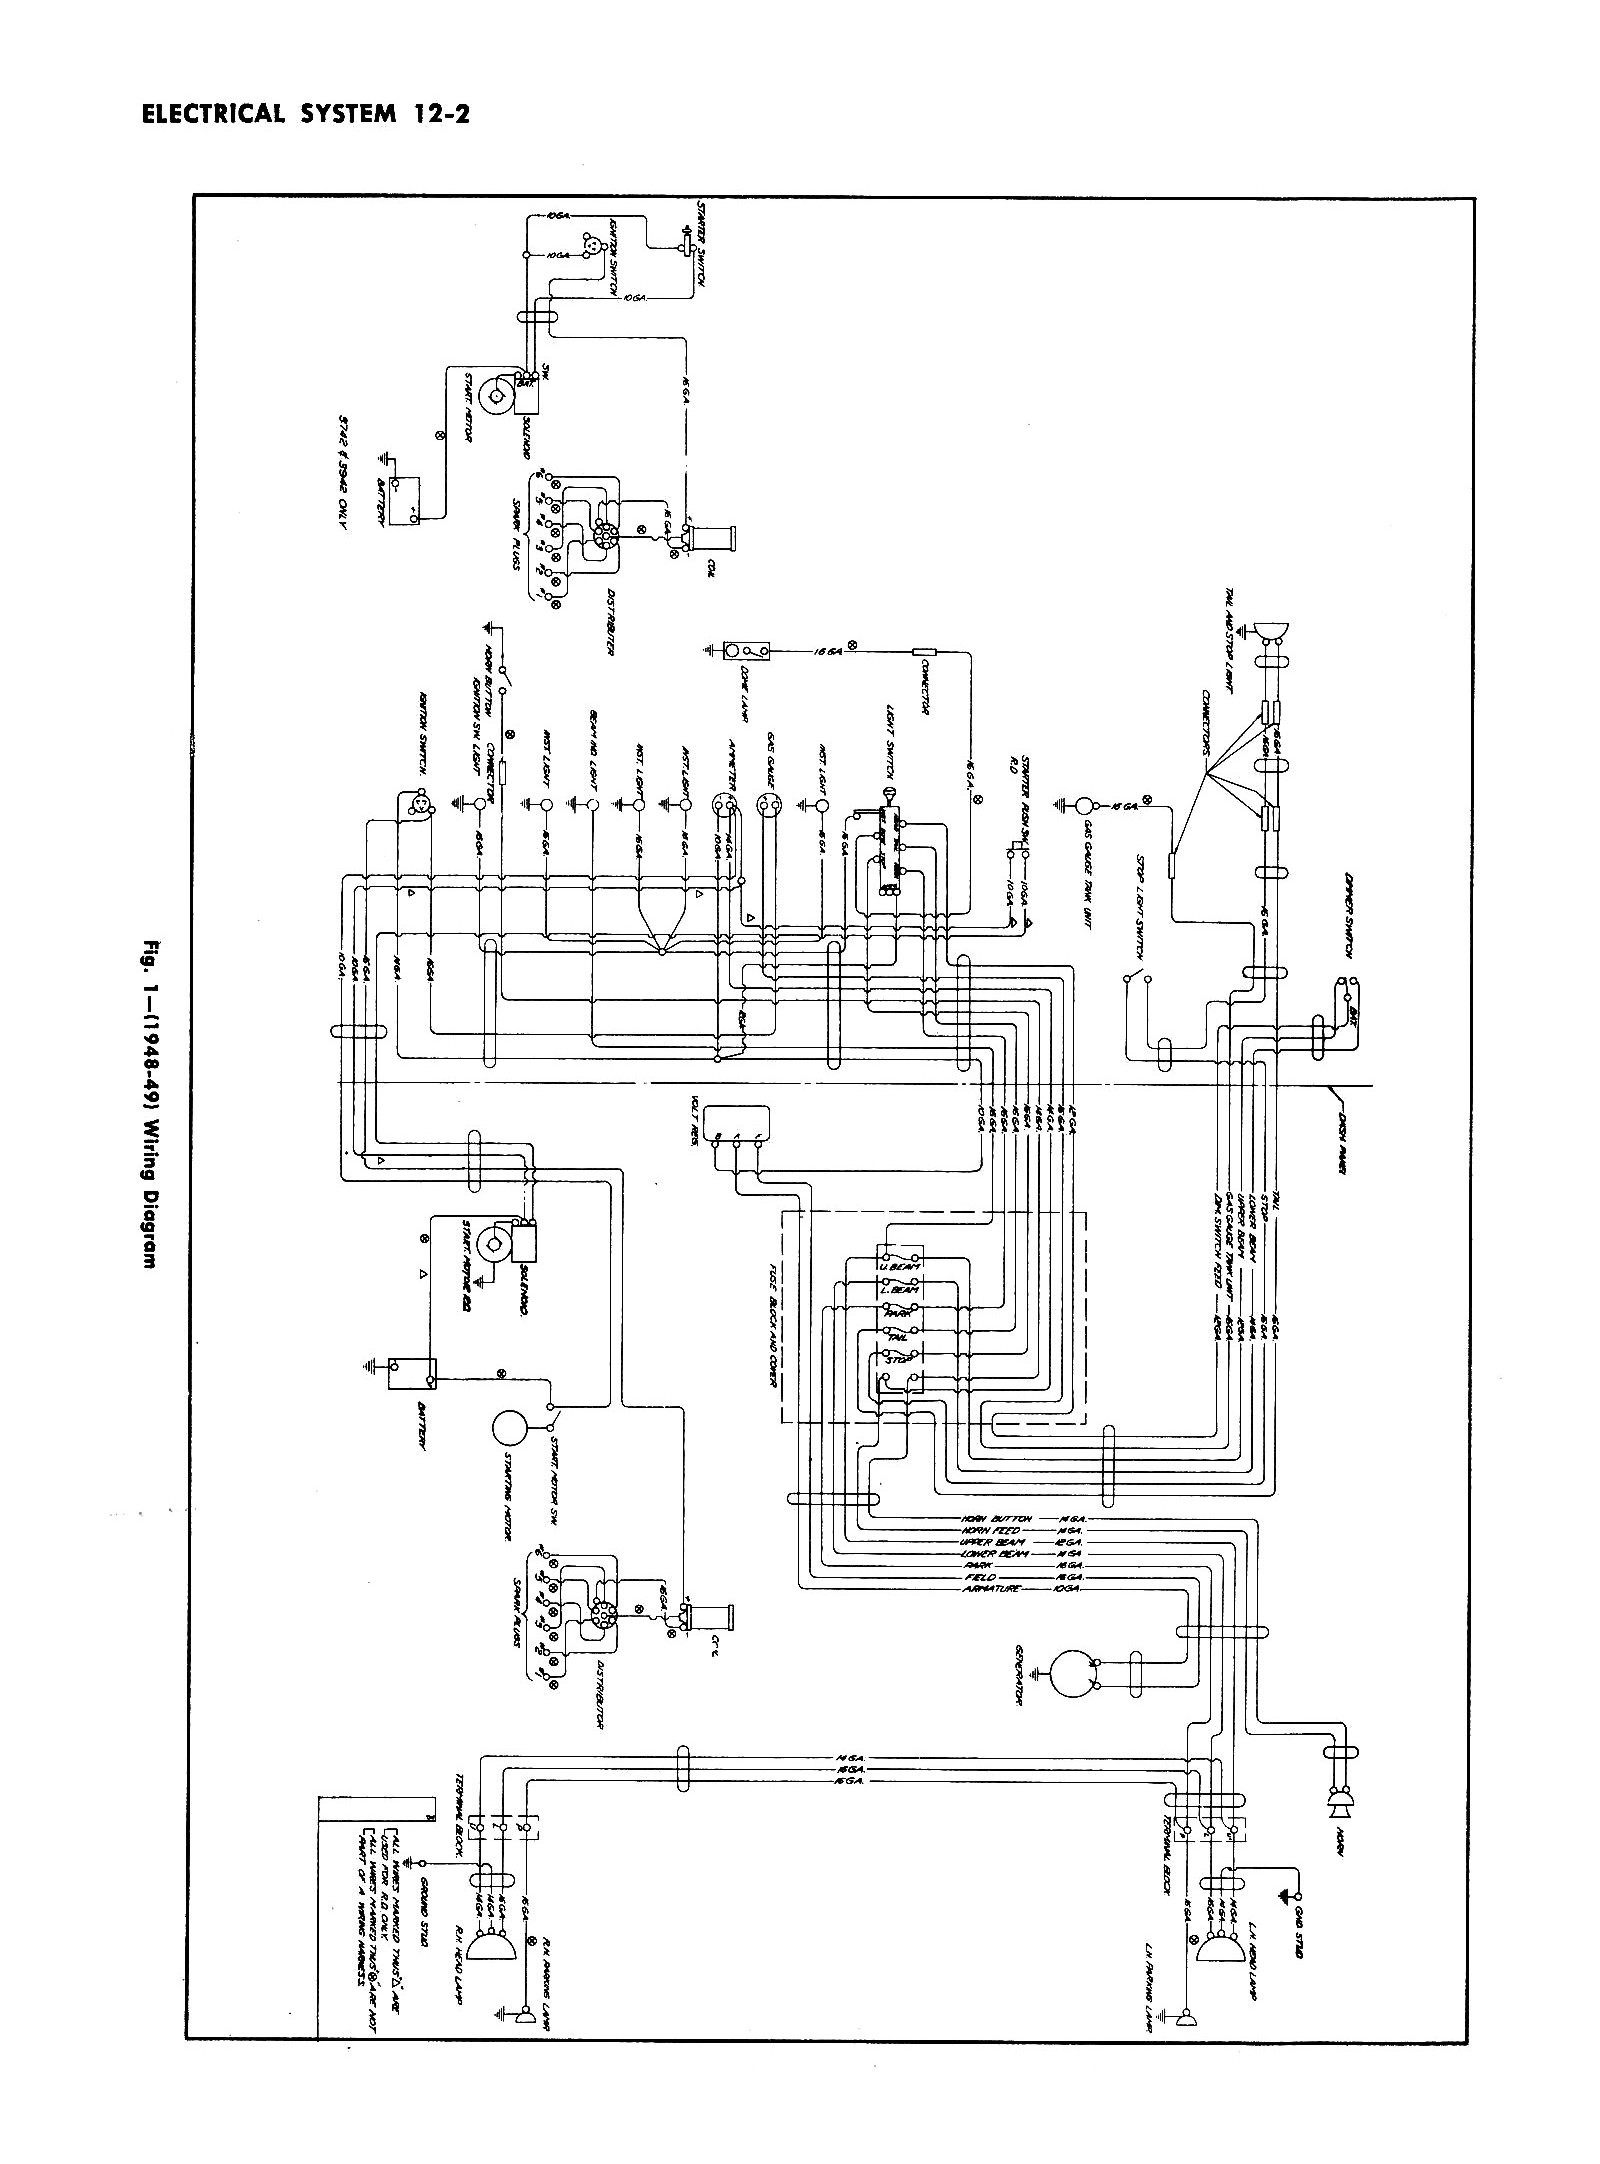 painless wiring diagram chevy with Wiring on Painless Wiring Harness For Cars together with Bm Neutral Safety Switch Wiring Diagram together with chevsofthe40s moreover Showthread together with Wiring Diagram Gm Tilt Steering Column.